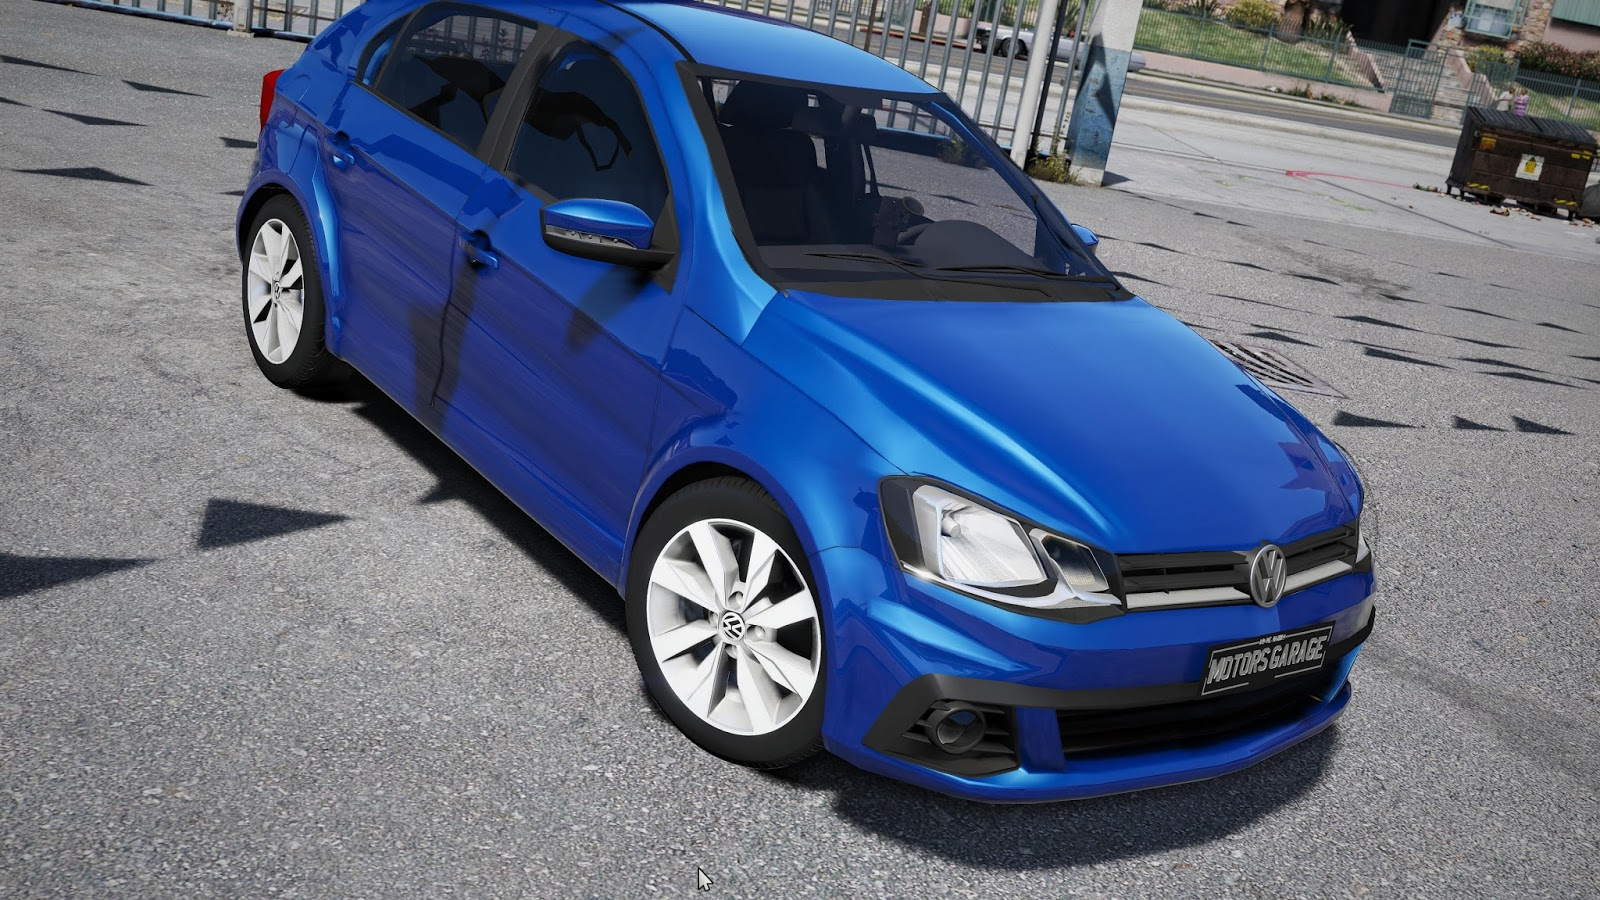 Gta v volkswagen gol g7 2017 motors garage modding studio for Garage volkswagen paris 15